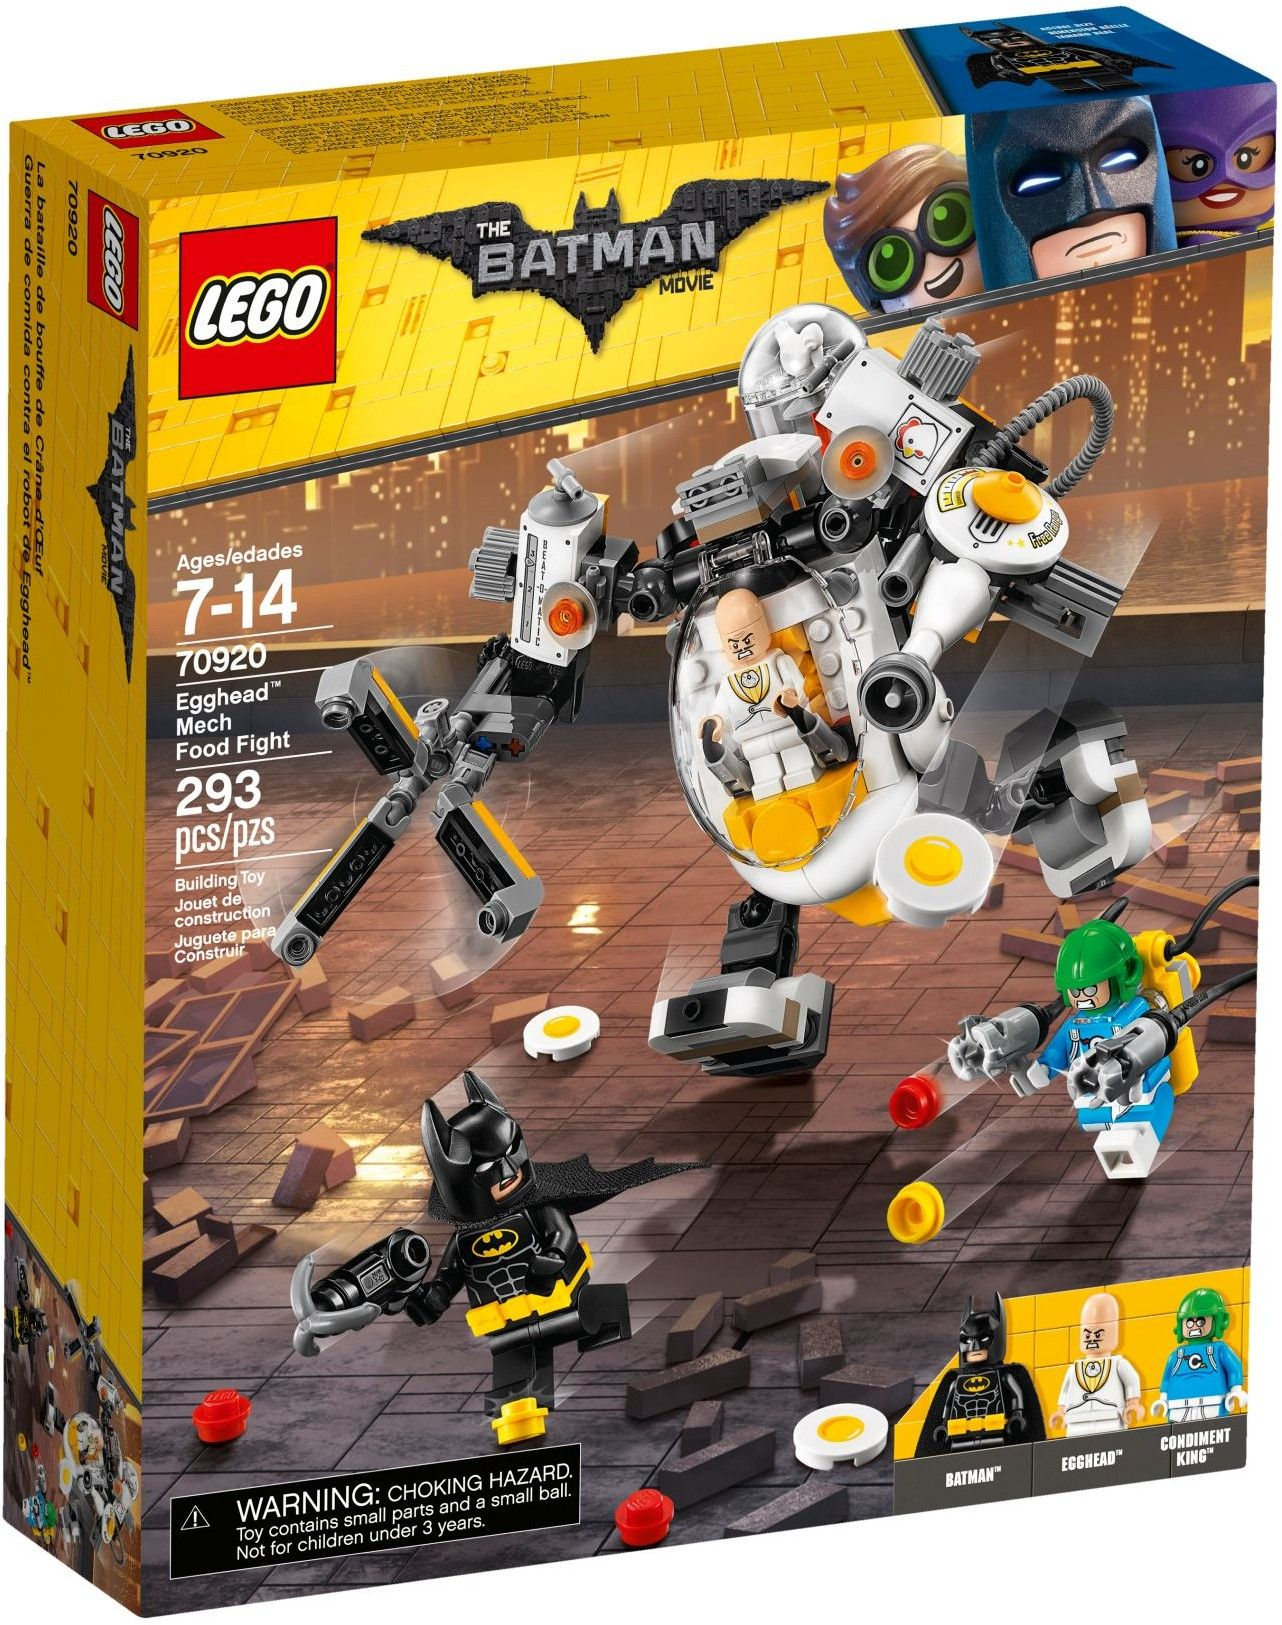 70920 Egghead Mech Food Fight With Images Lego Batman Movie